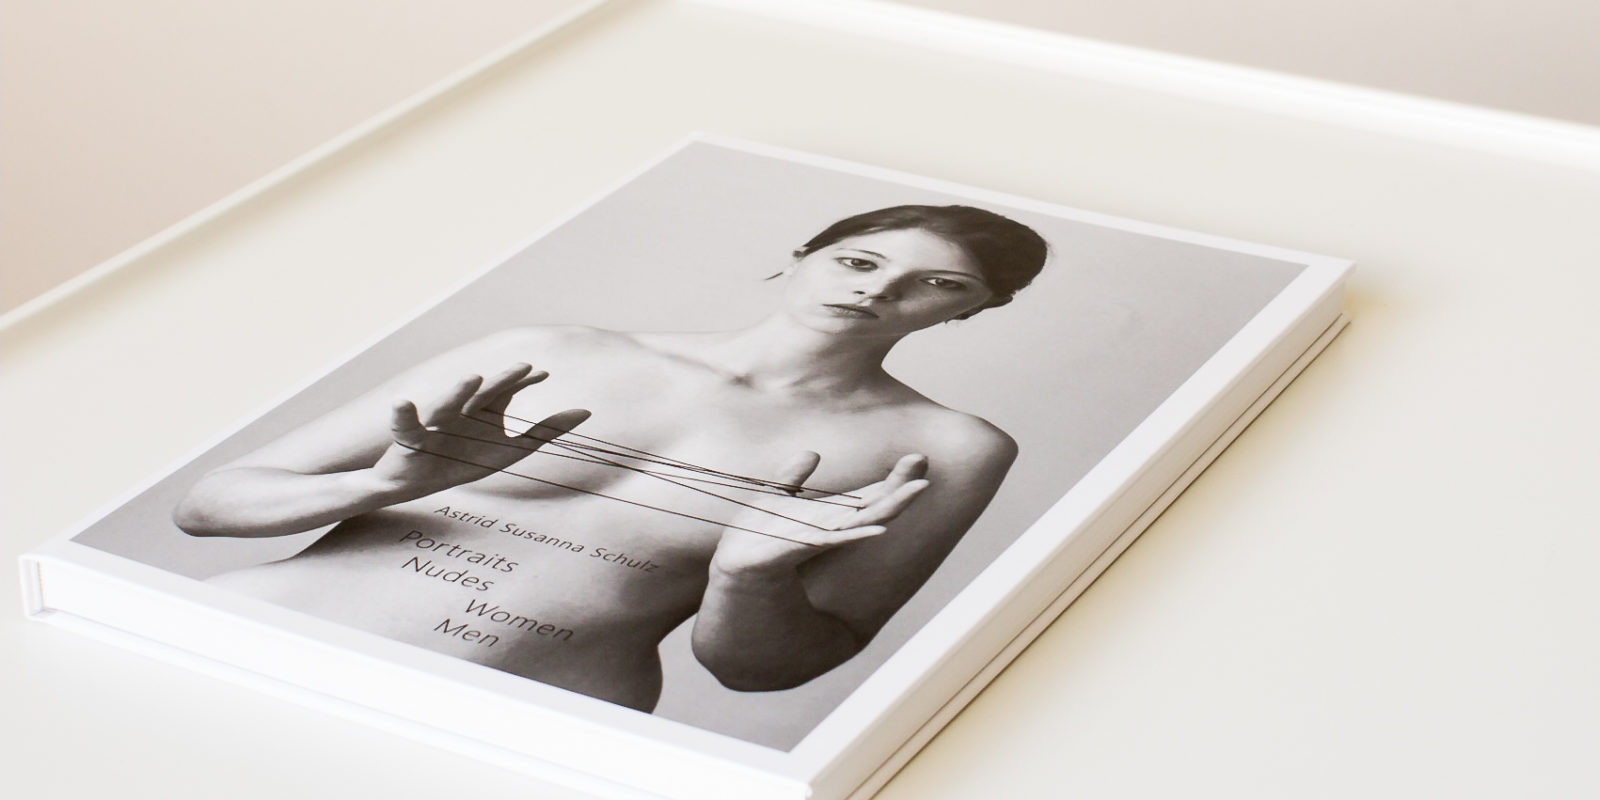 portraits-nudes-women-men-astrid-susanna-schulz-photobooks_cover